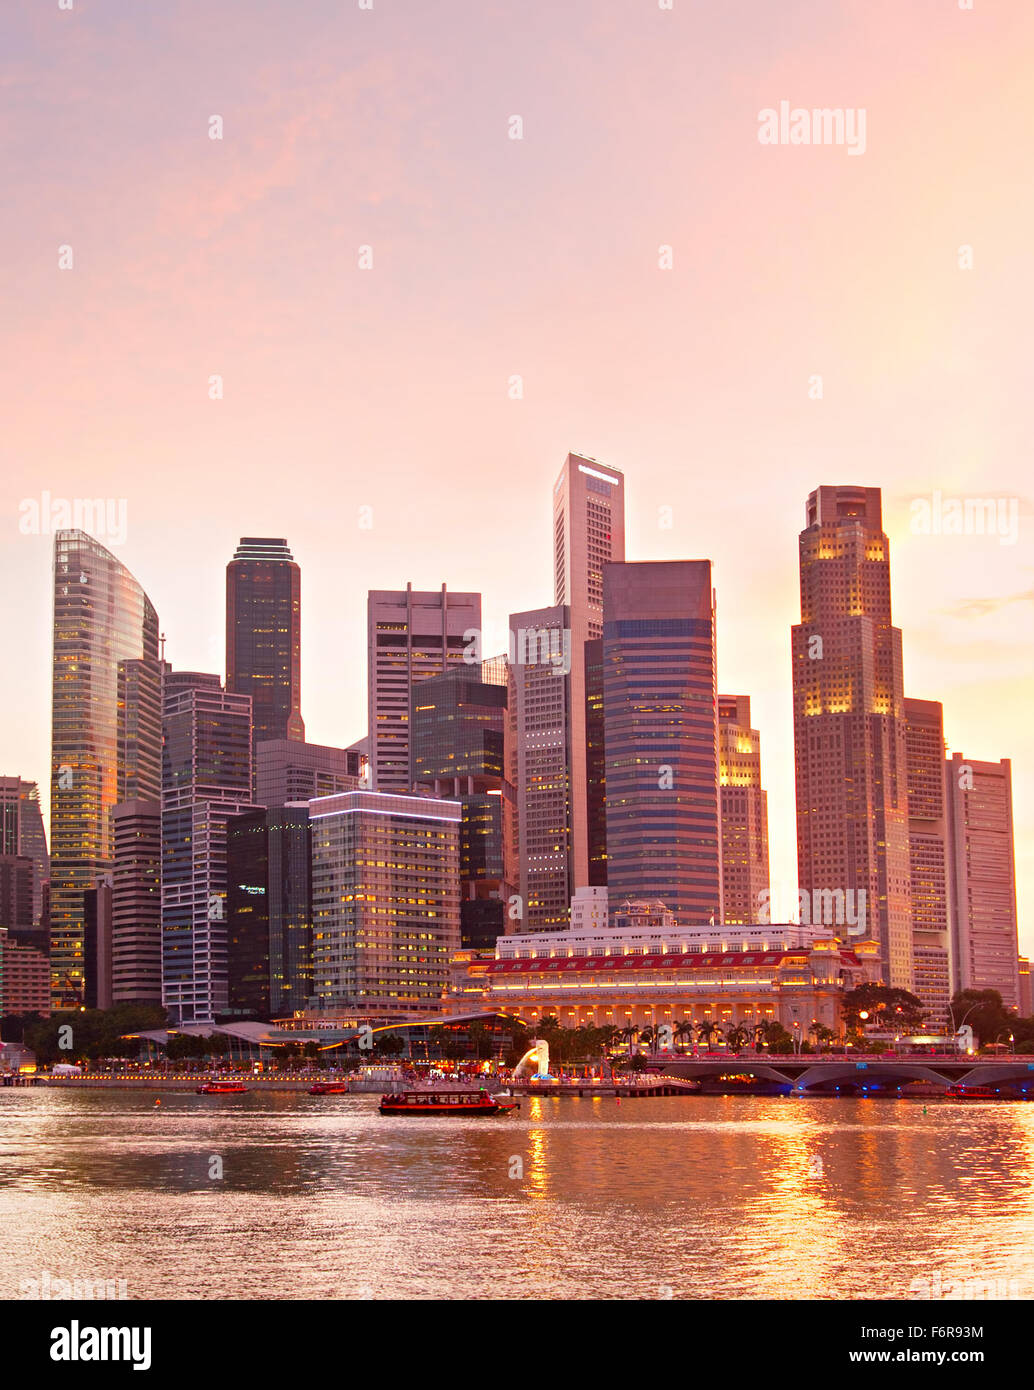 Colorful Singapore Downtown Core at sunset - Stock Image